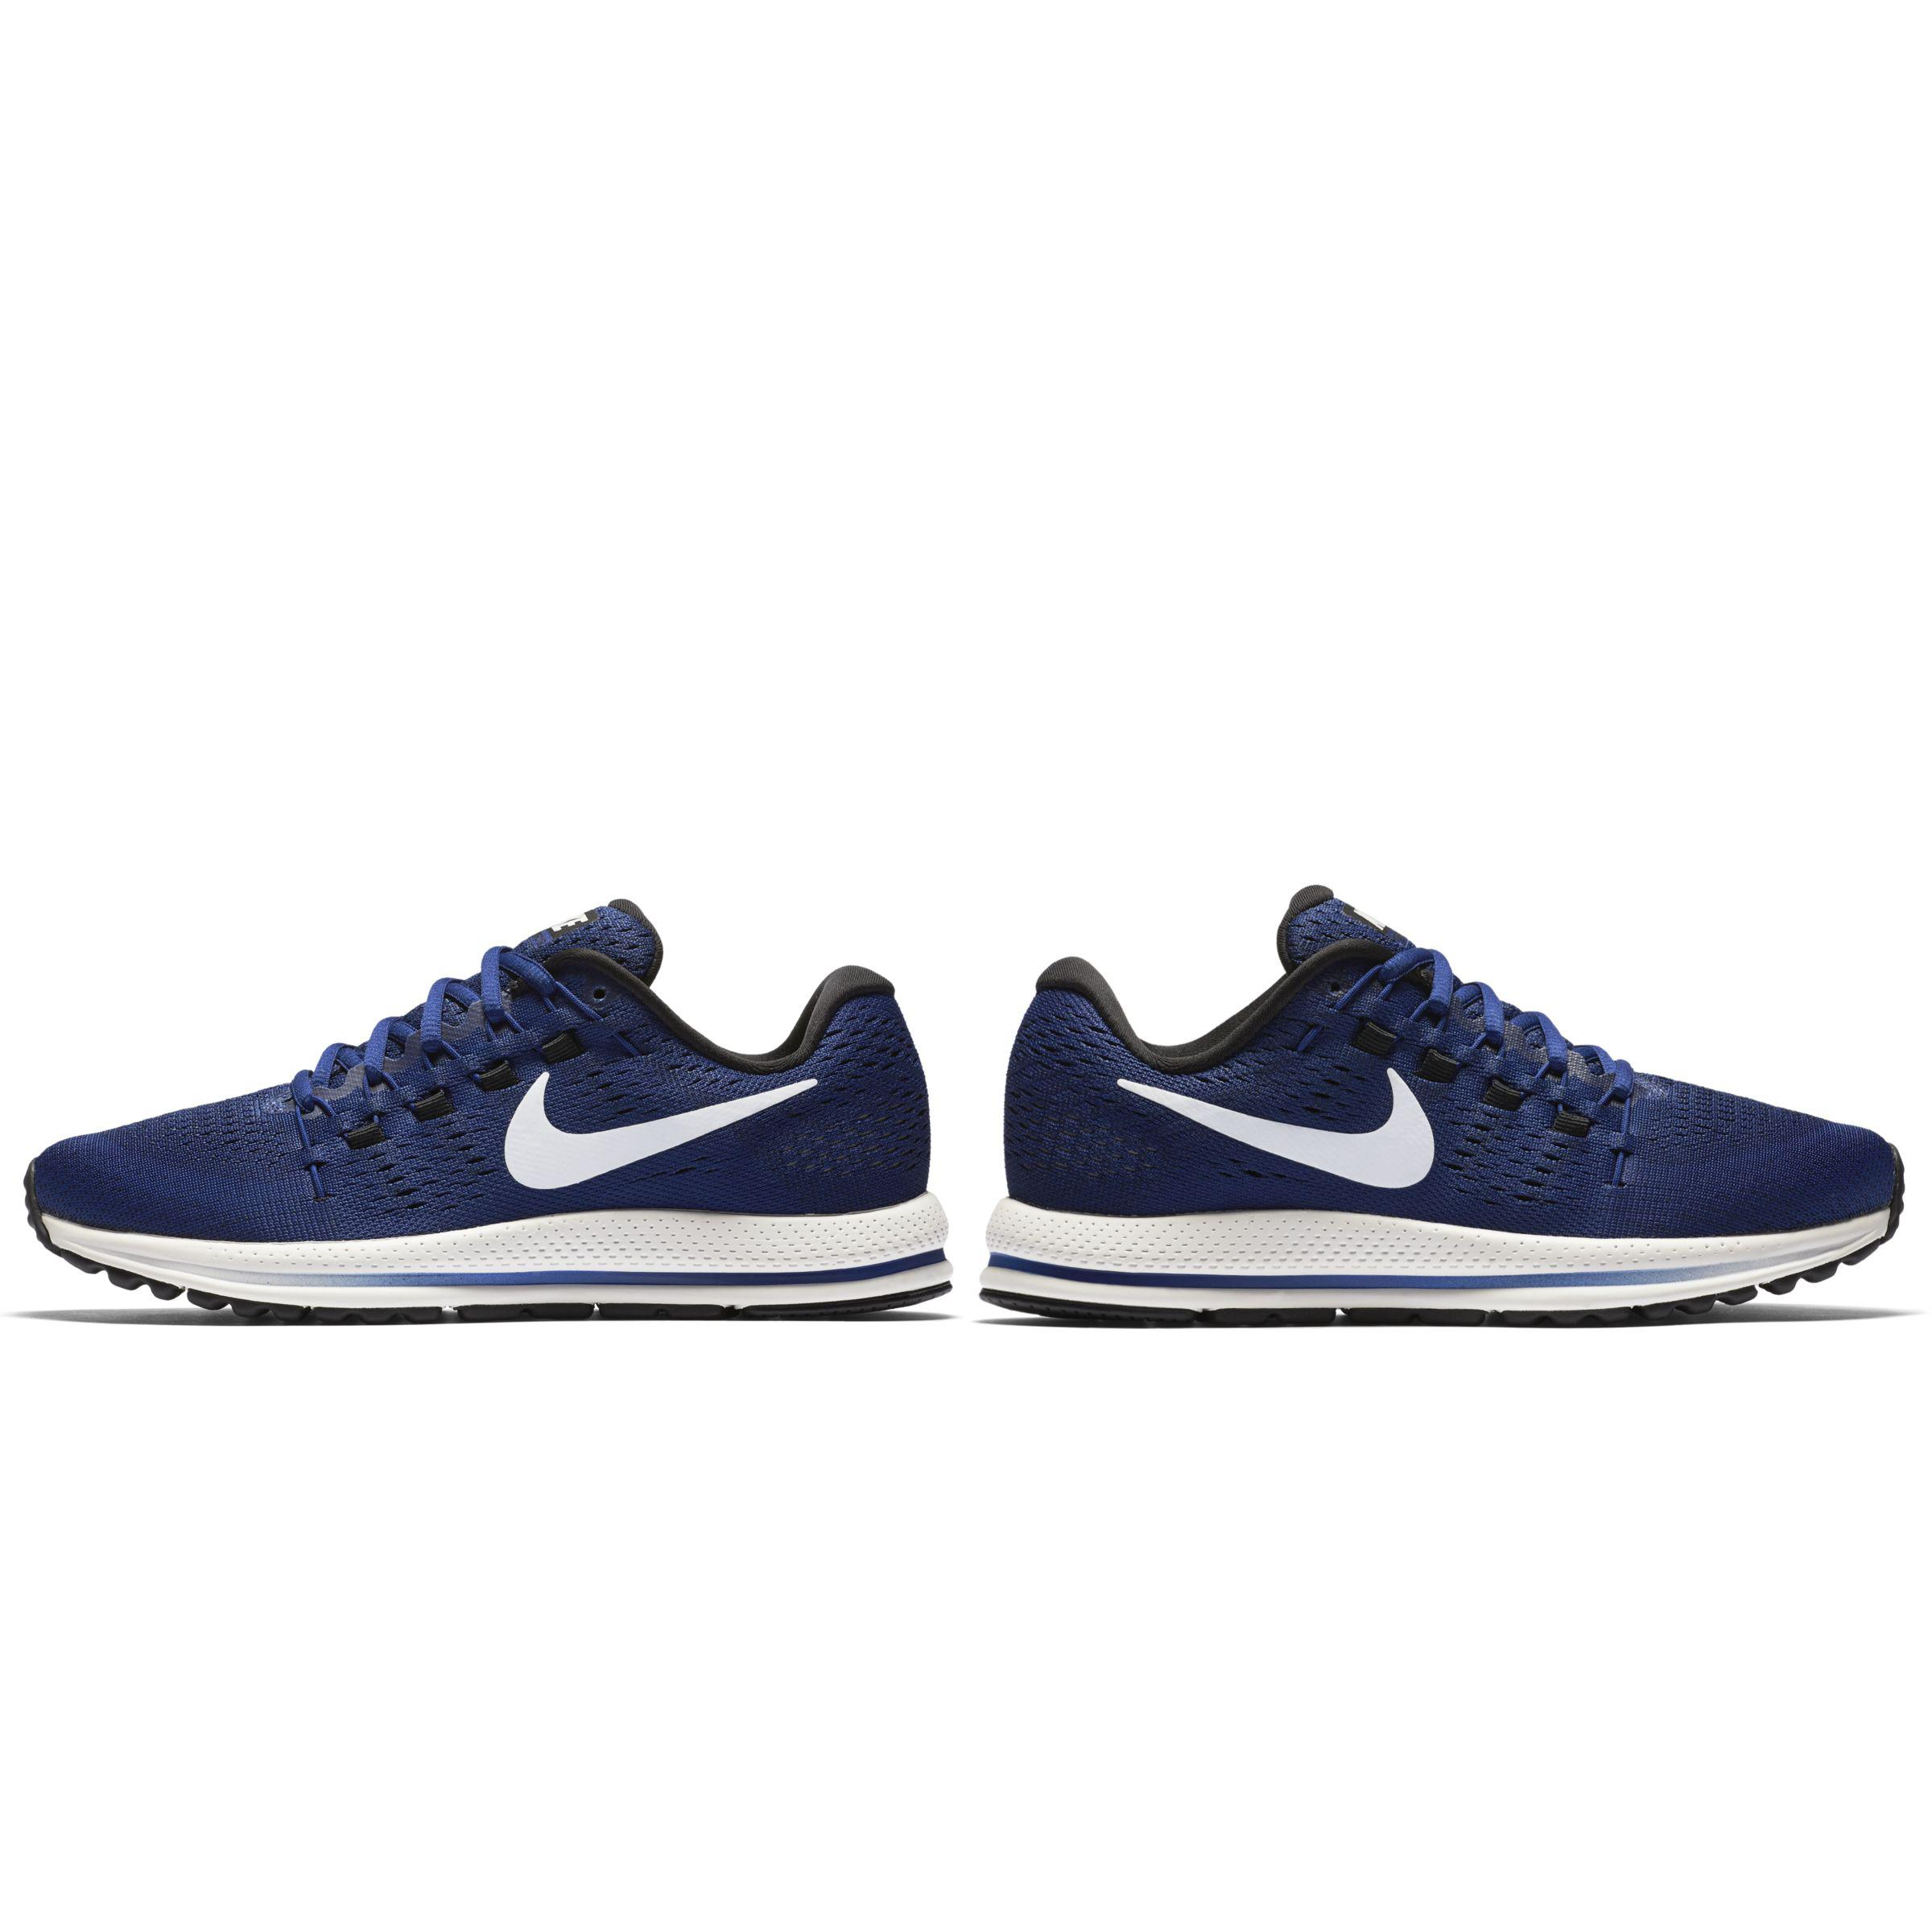 lowest price 5b365 e40b6 Nike Air Zoom Vomero 12 Running Shoe in Blue - Lyst